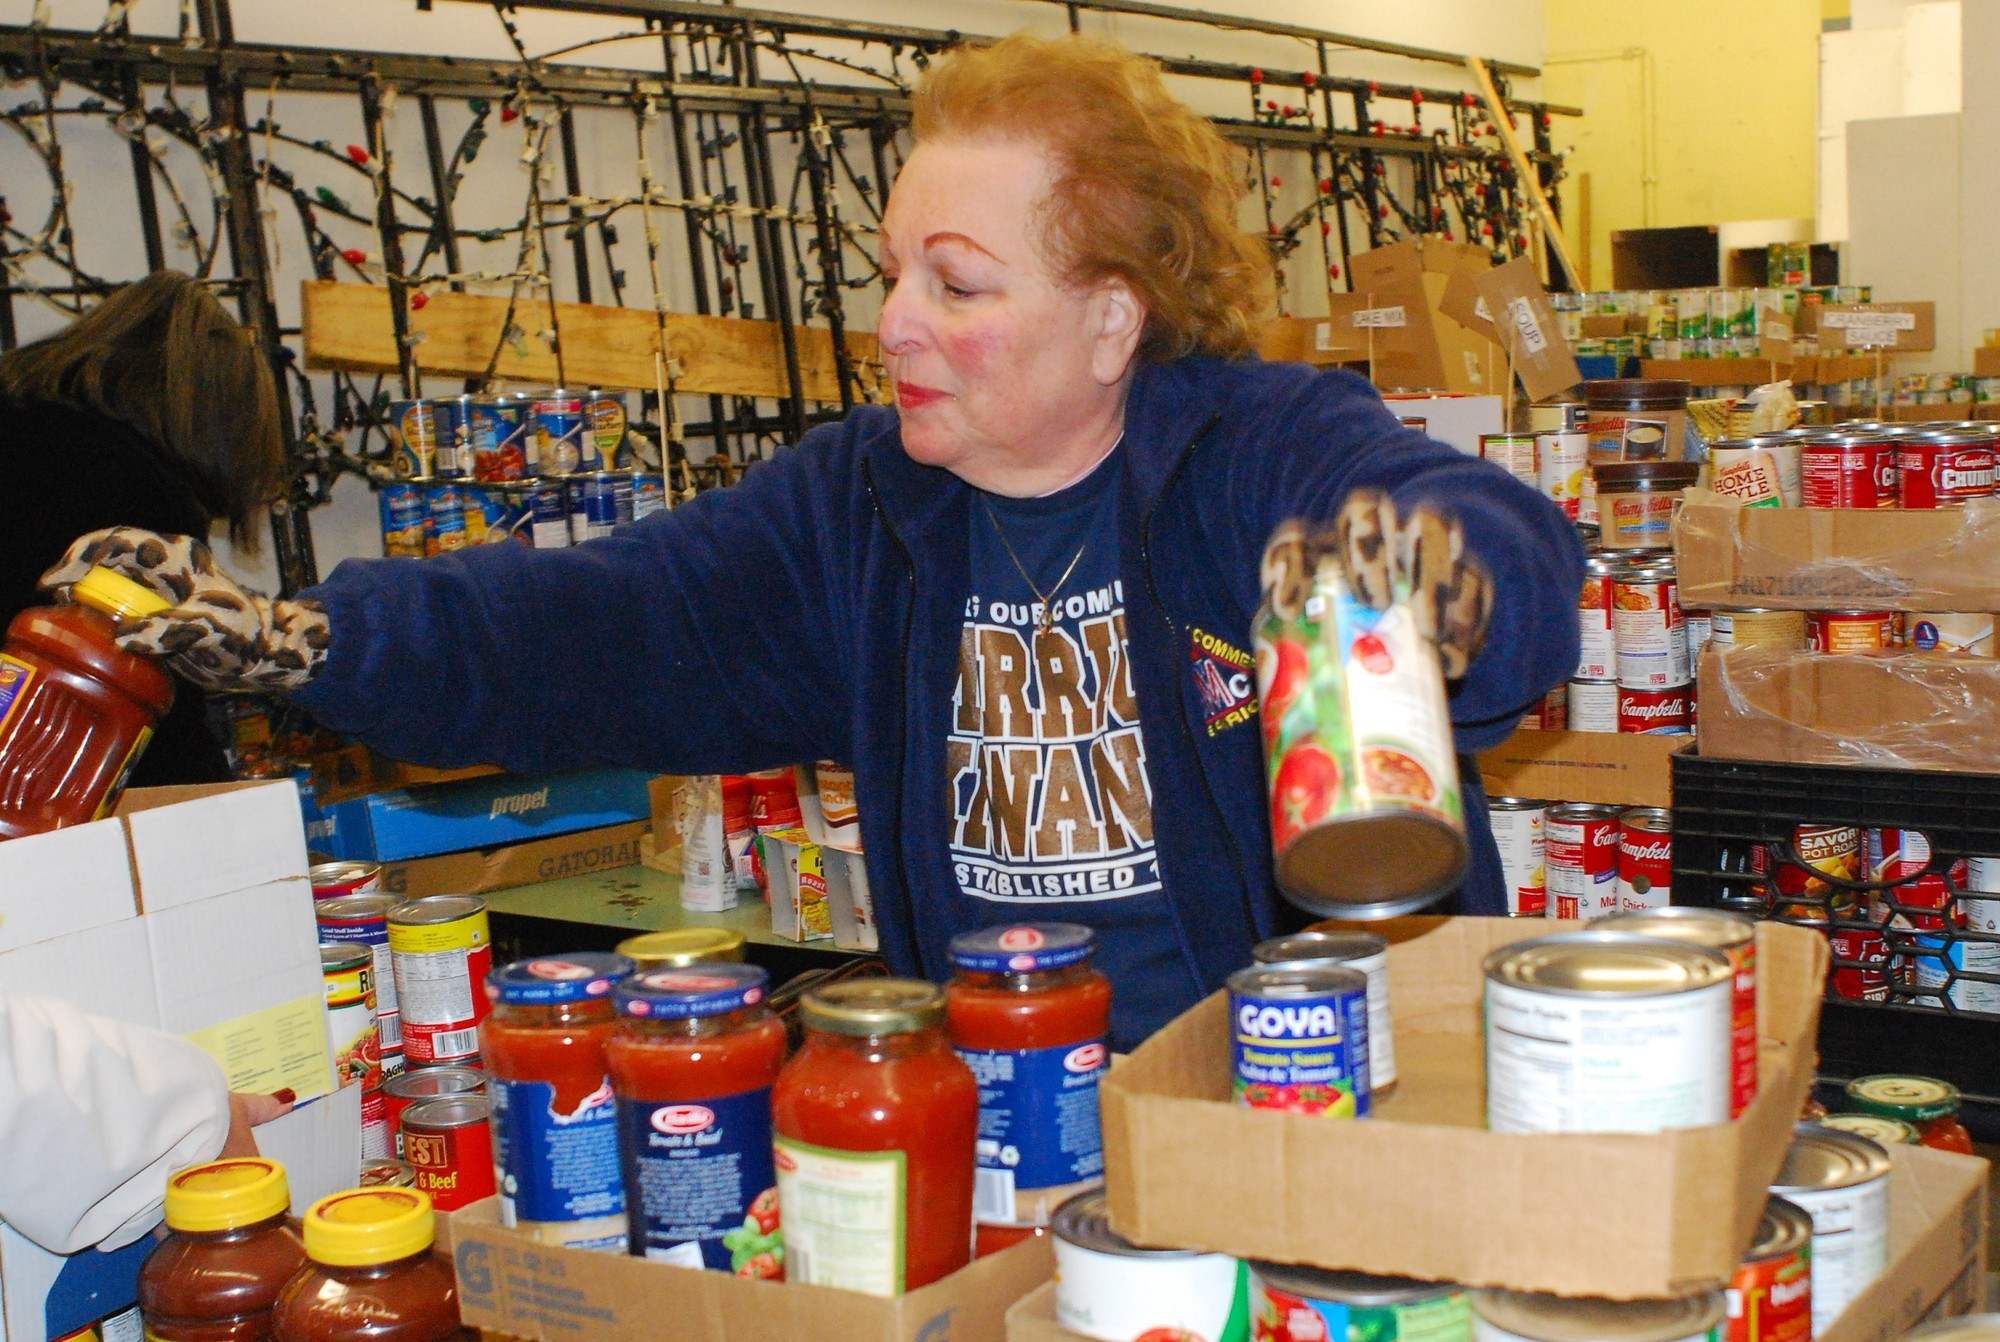 Merrick Kiwanis Club volunteer Susan Helsinger was at the front of the line assembling boxes of food for donation to local families in need.